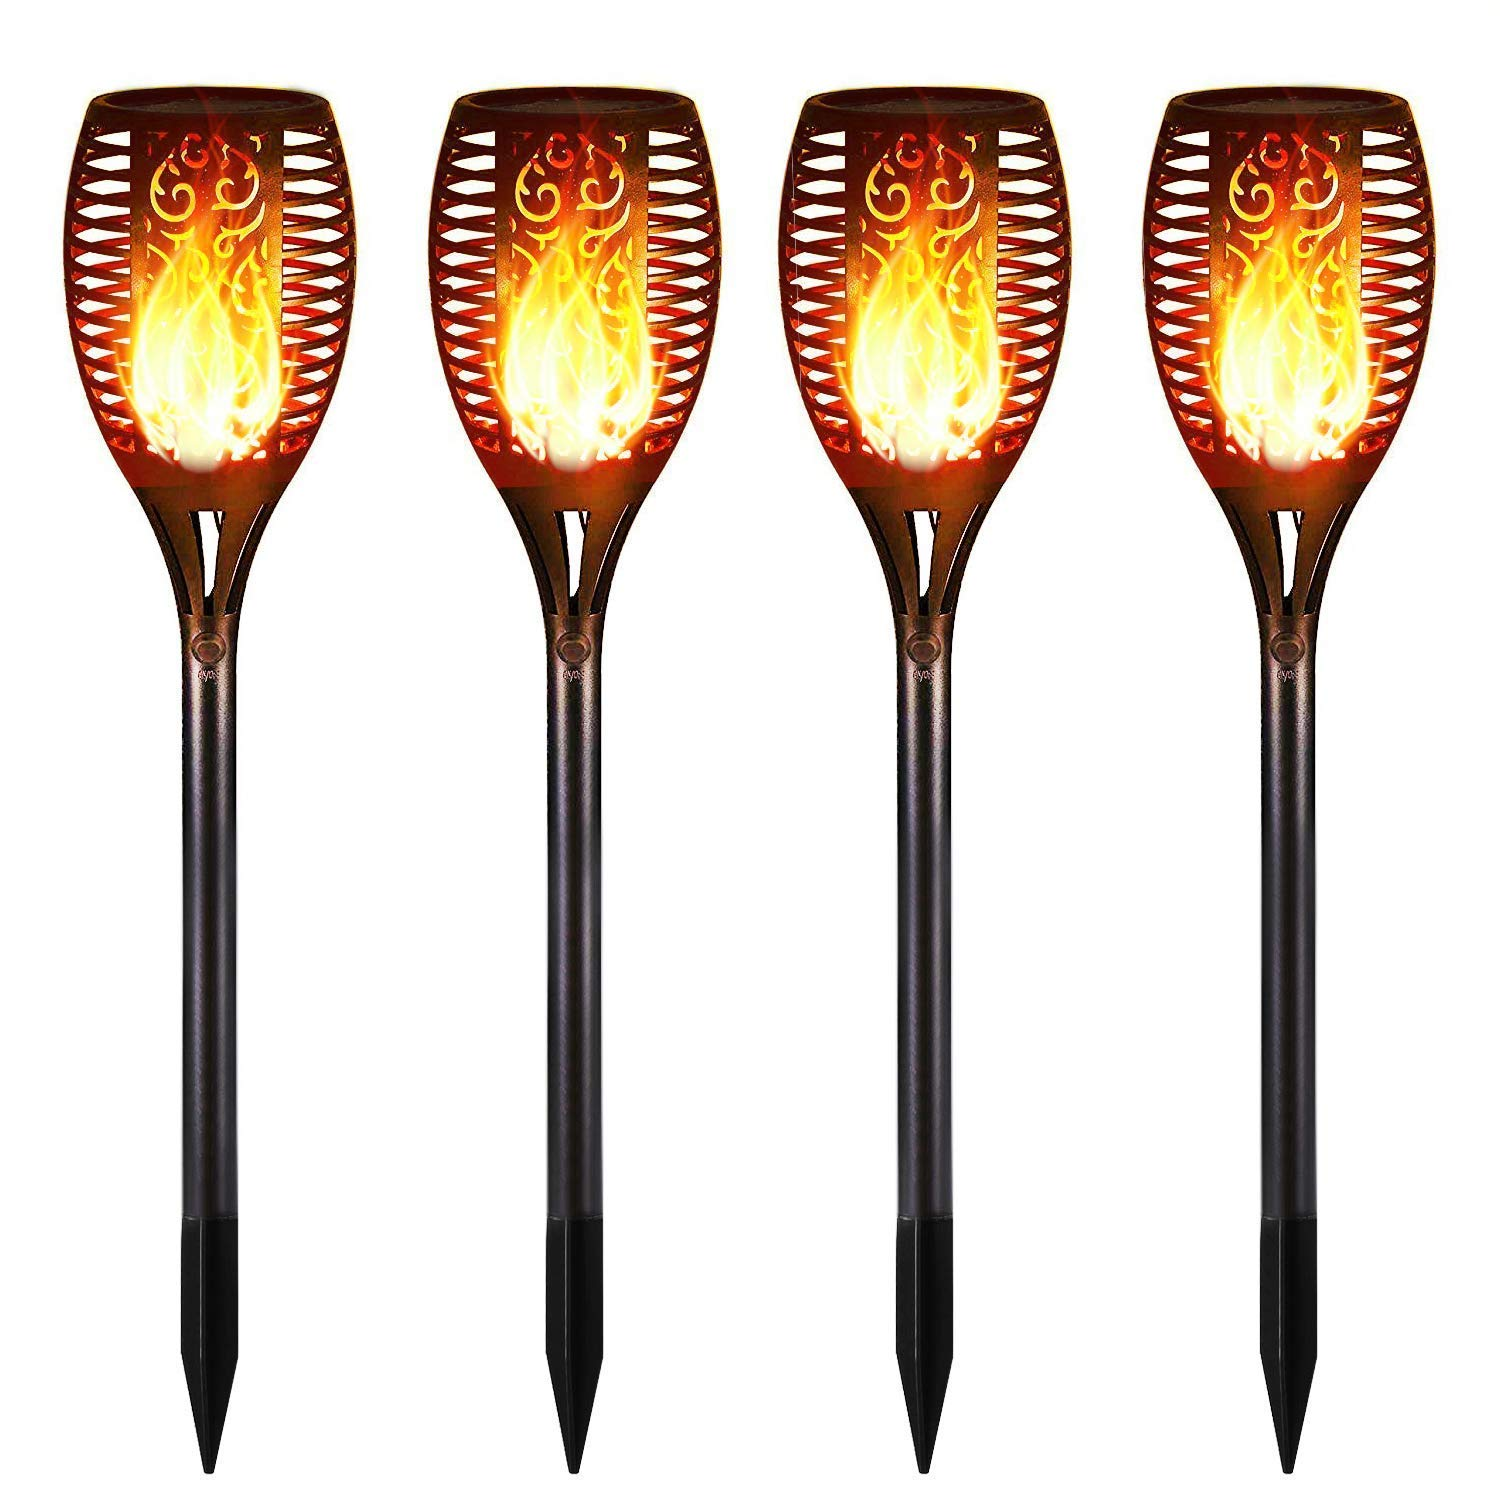 IOO Solar Torch Lights Outdoor Waterproof Dancing Flickering Flames Torches Landscape Decoration Lighting Security Path LED Light for Garden Pathways Yard Patio 4 Pack